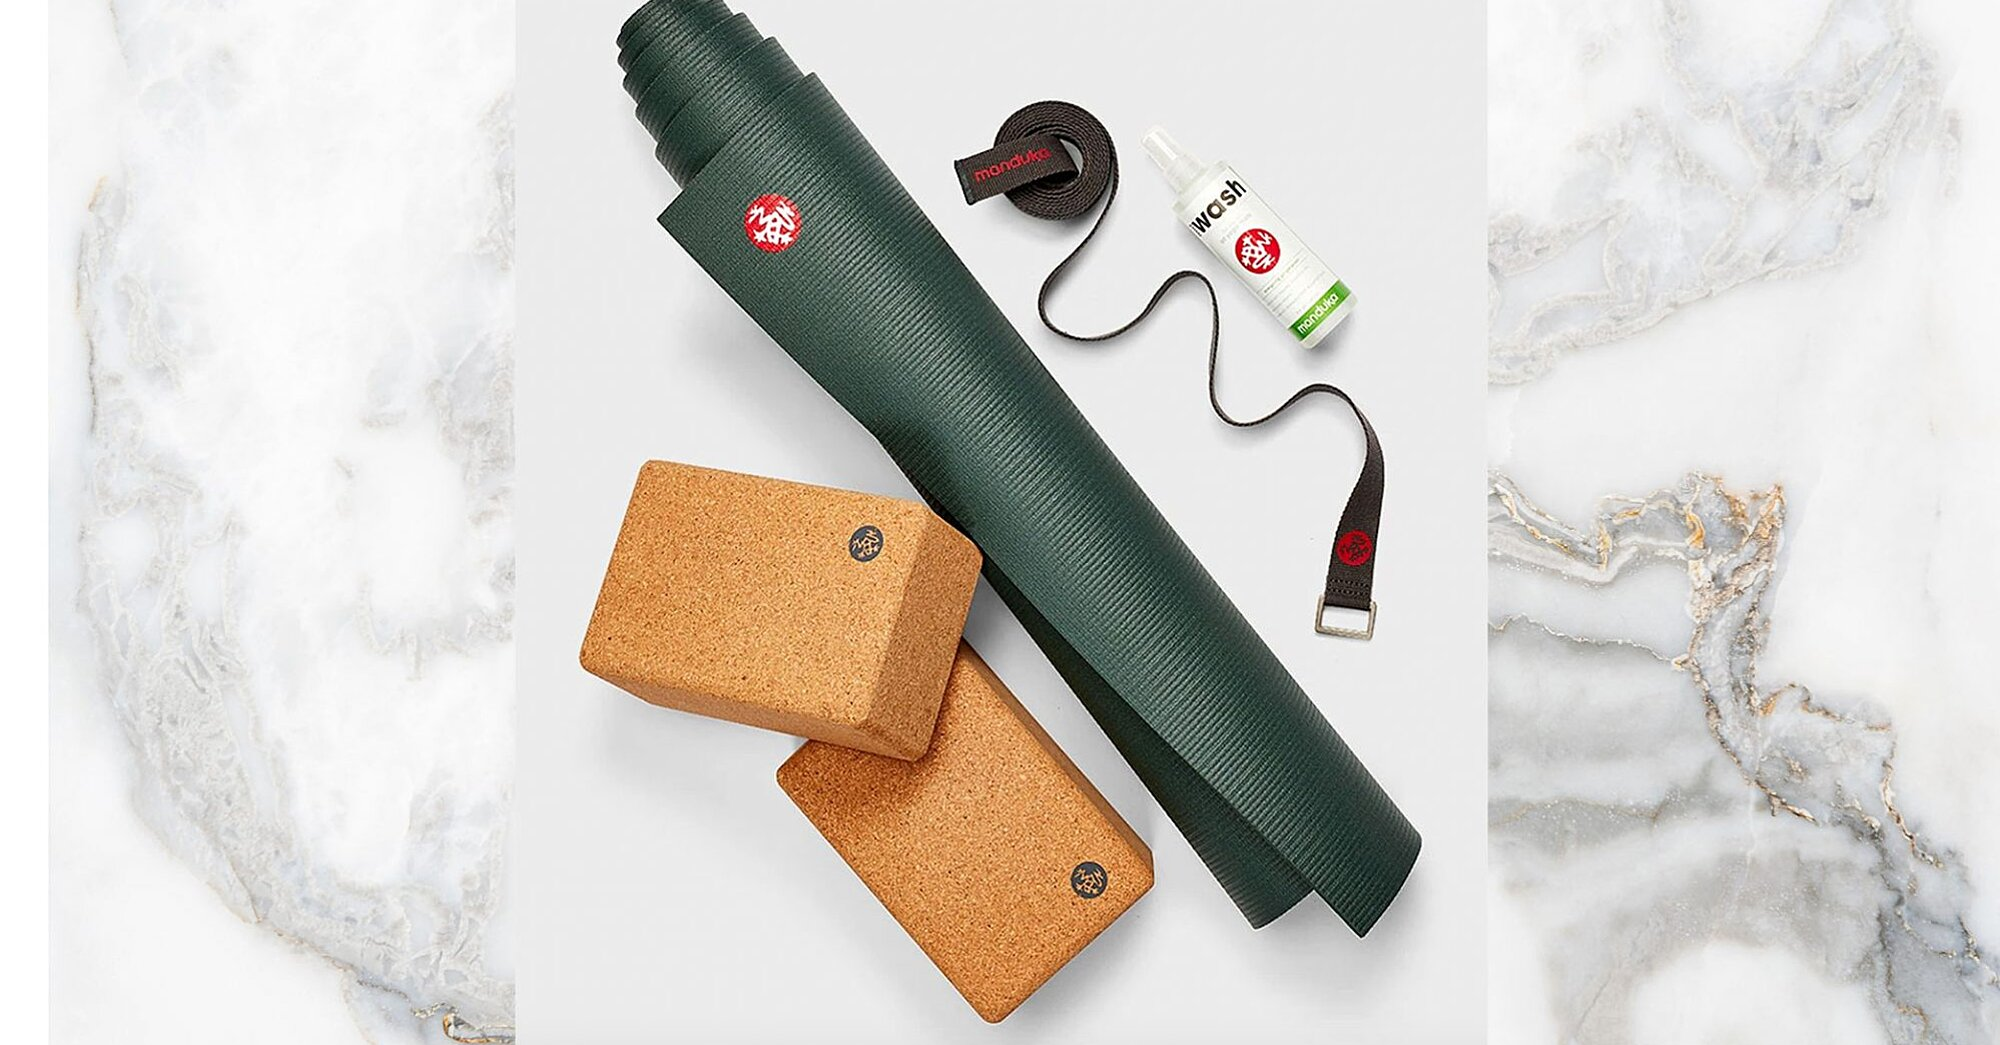 This Manduka Yoga Bundle Is Everything You Need for a Home Practice